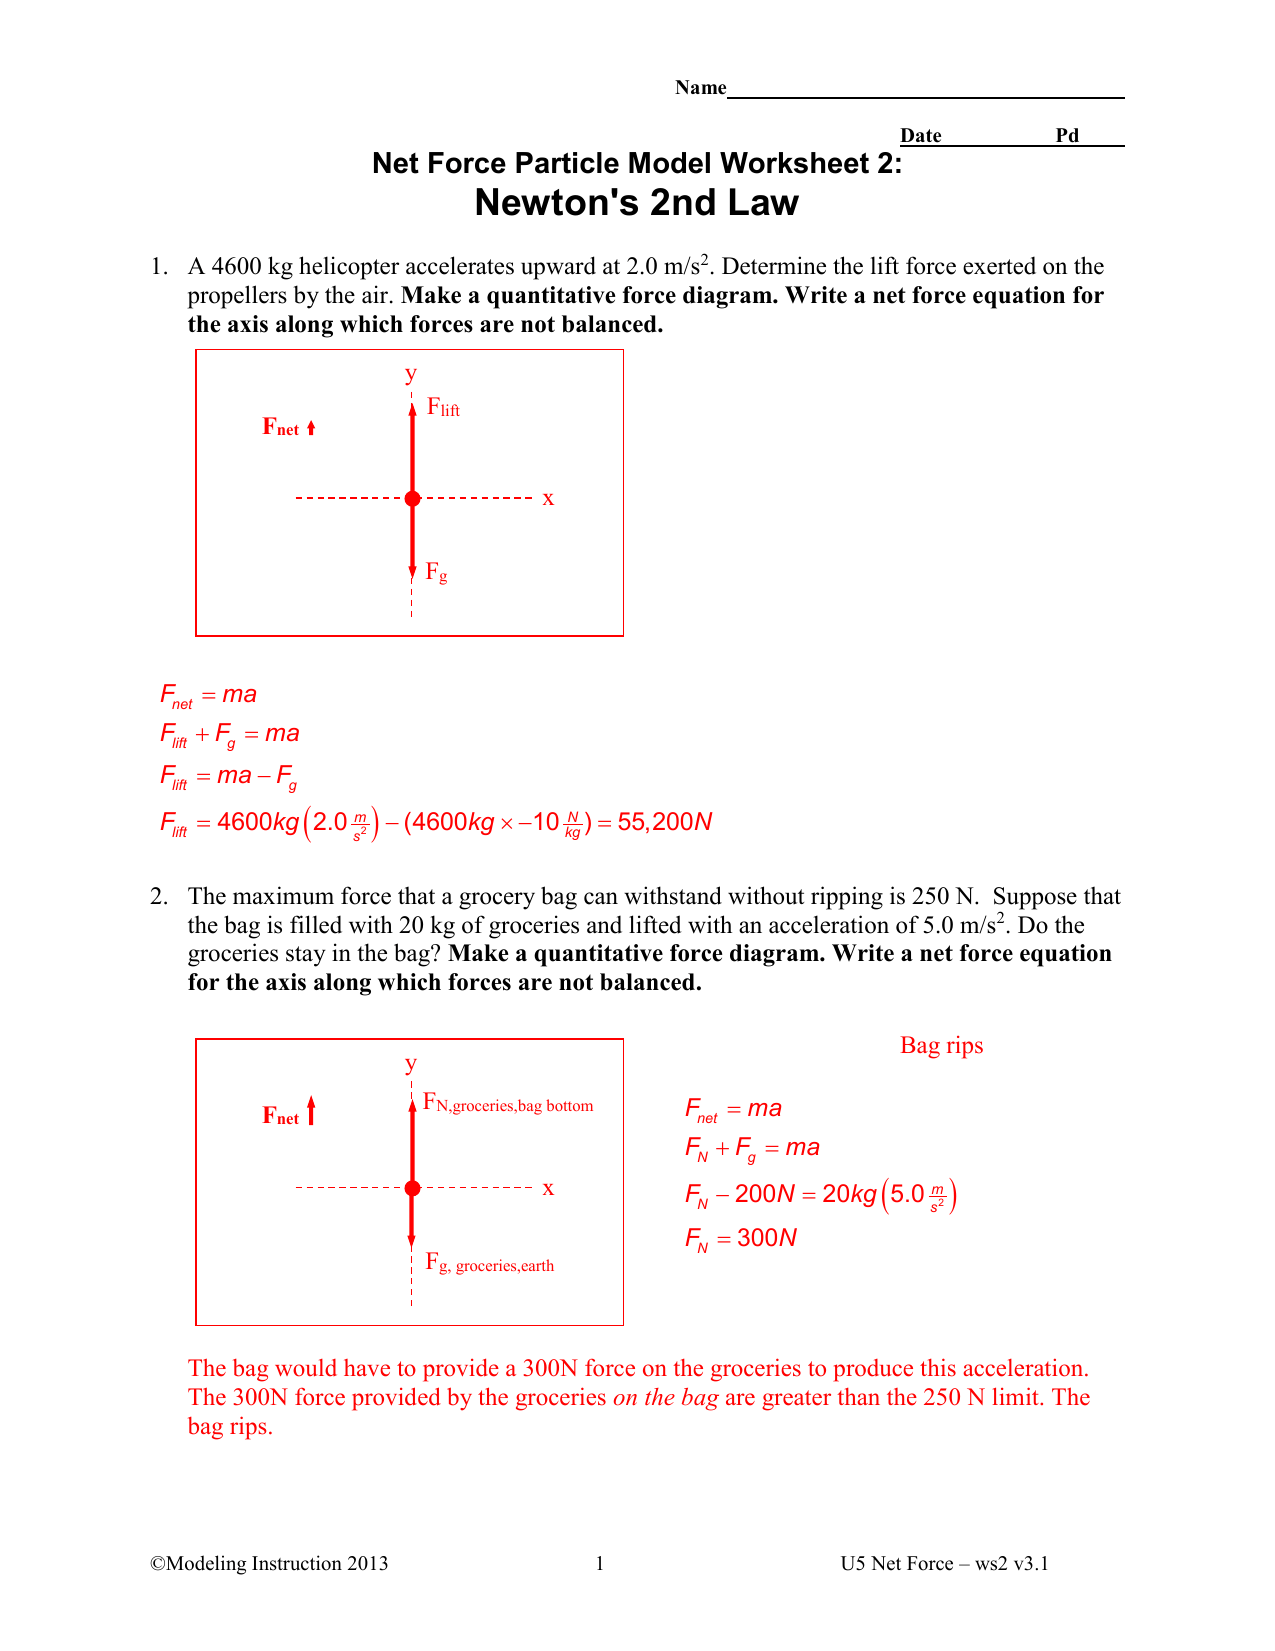 Net Force Particle Model Worksheet 2 Newton S 2nd Law